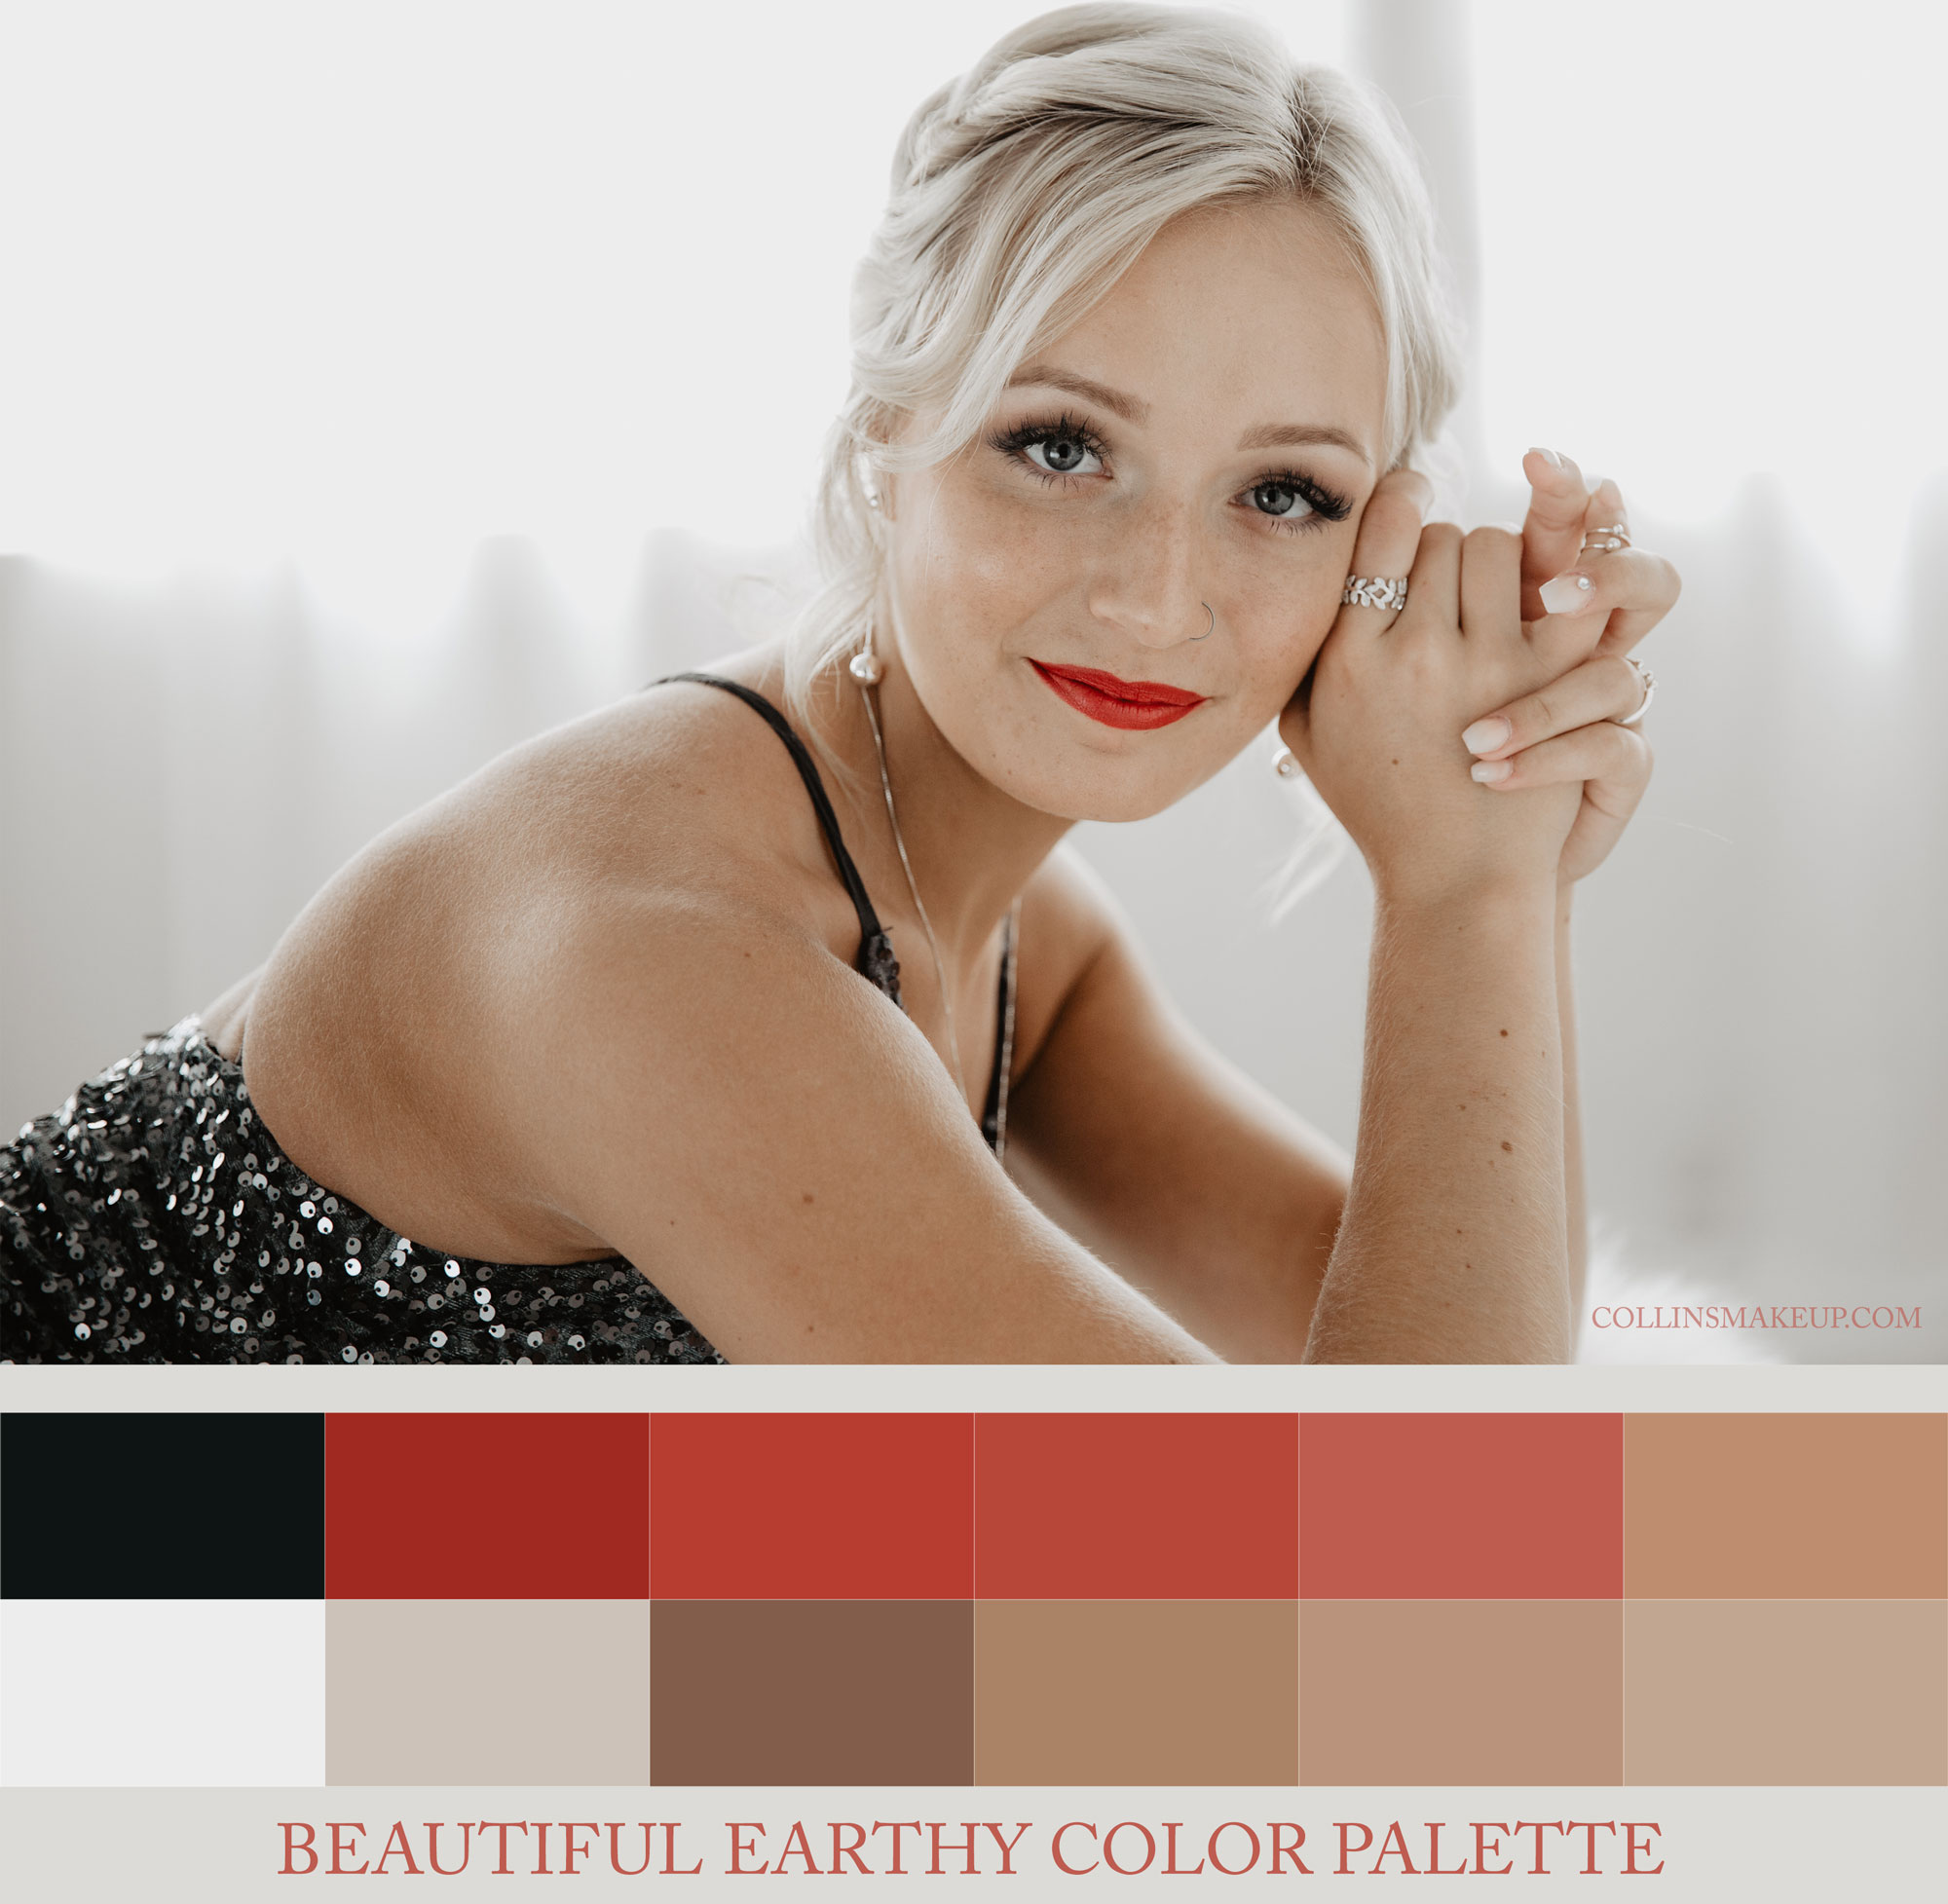 earthycolorpalette.jpg